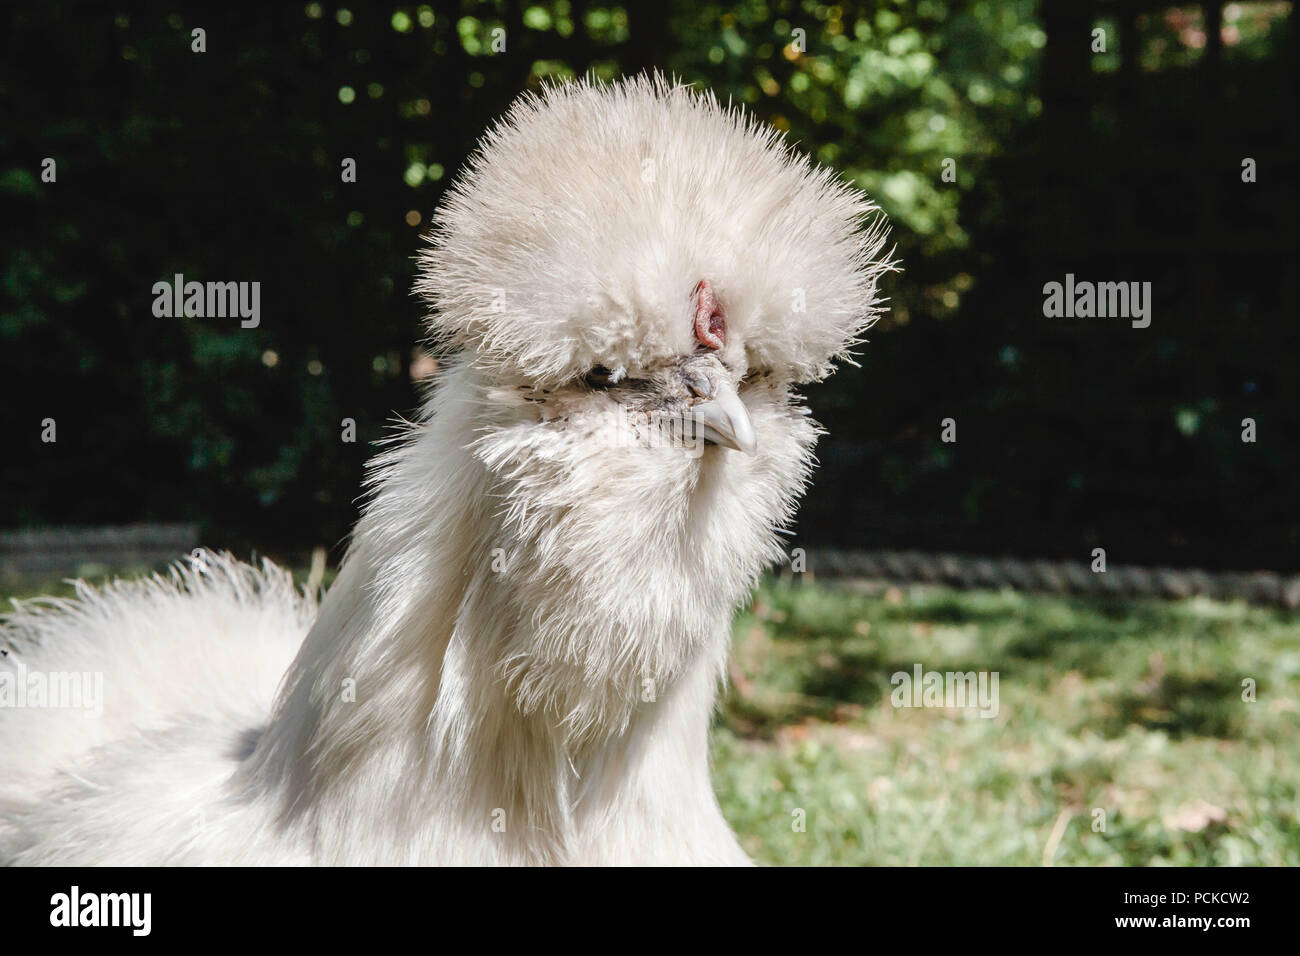 White Silkie Pet Chicken - Stock Image